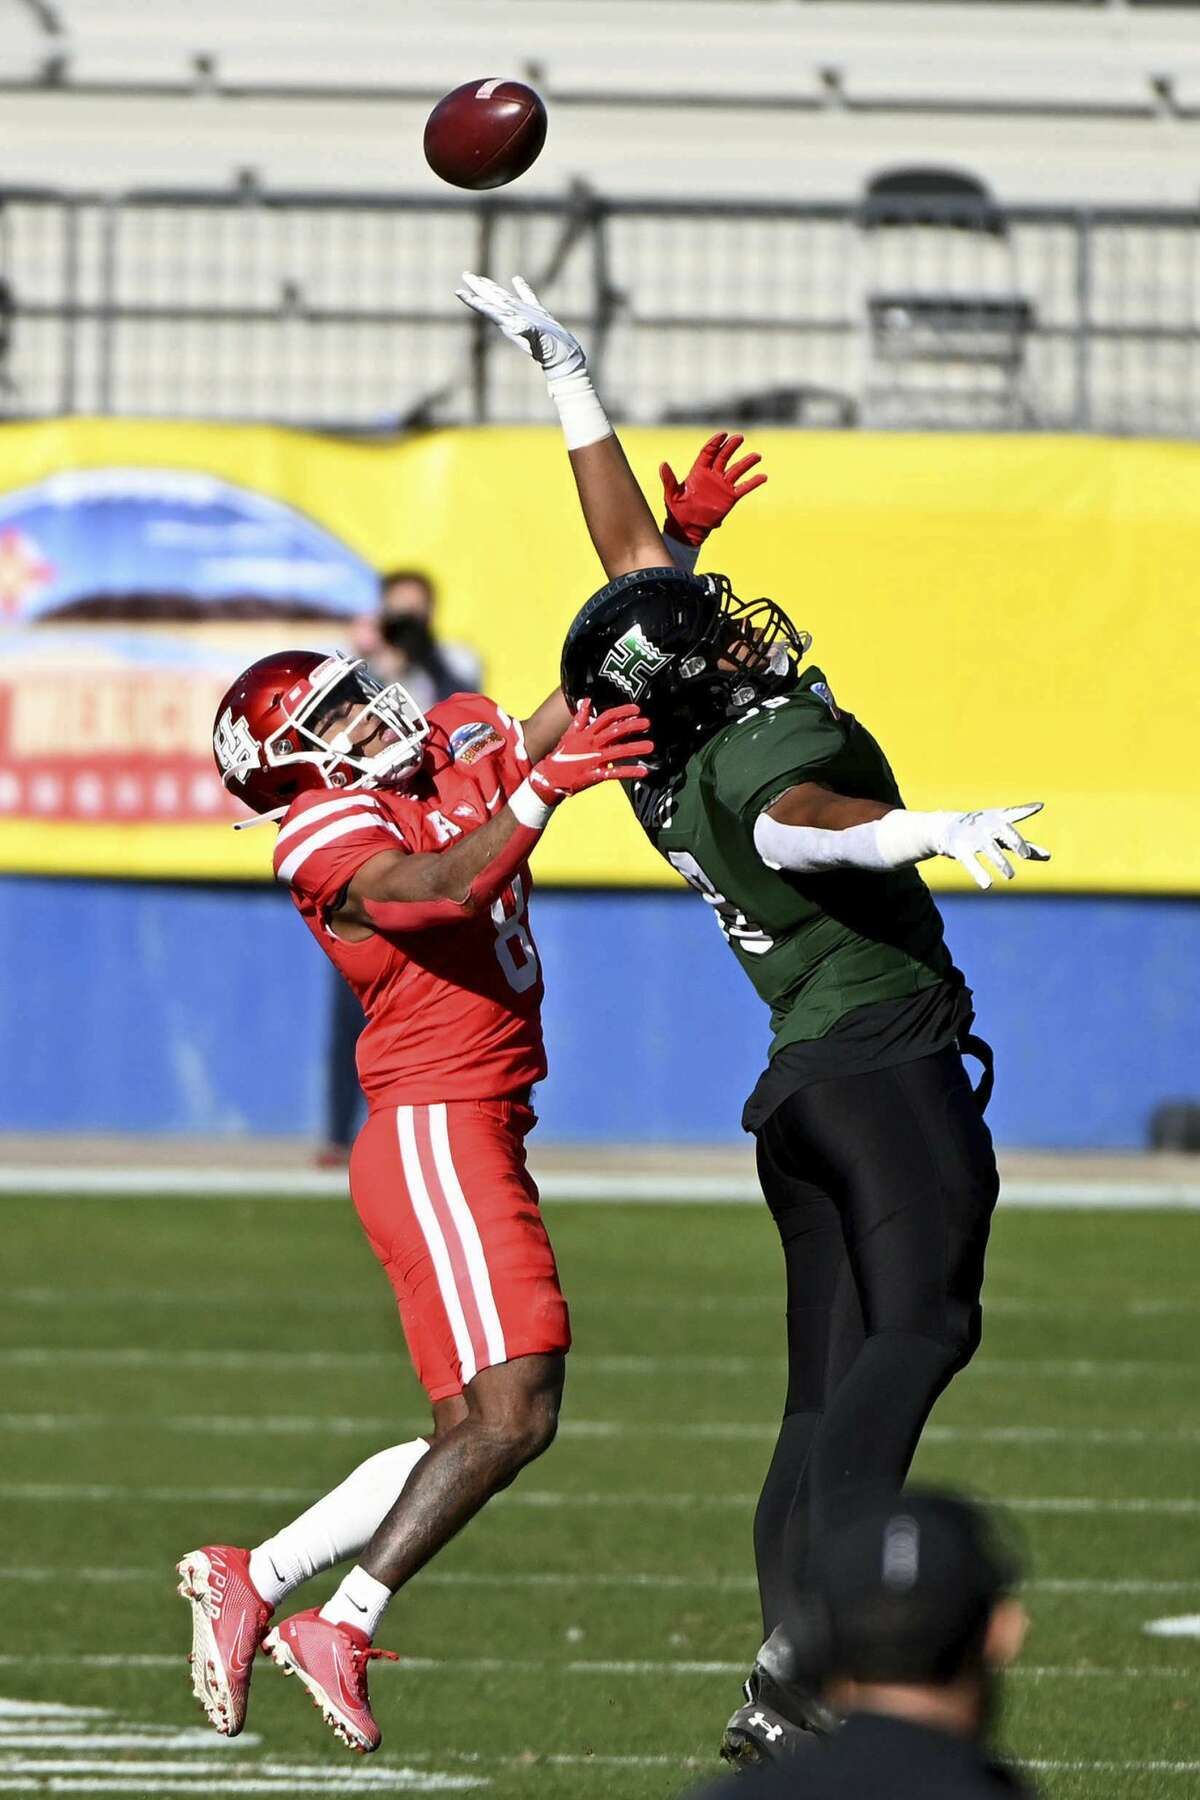 Hawaii Jonah Laulu (99) can't make a catch while defended by Houston cornerback Marcus Jones (8) in the first quarter of the New Mexico Bowl NCAA college football game in Frisco, Texas, Thursday, Dec. 24, 2020. (AP Photo/Matt Strasen)